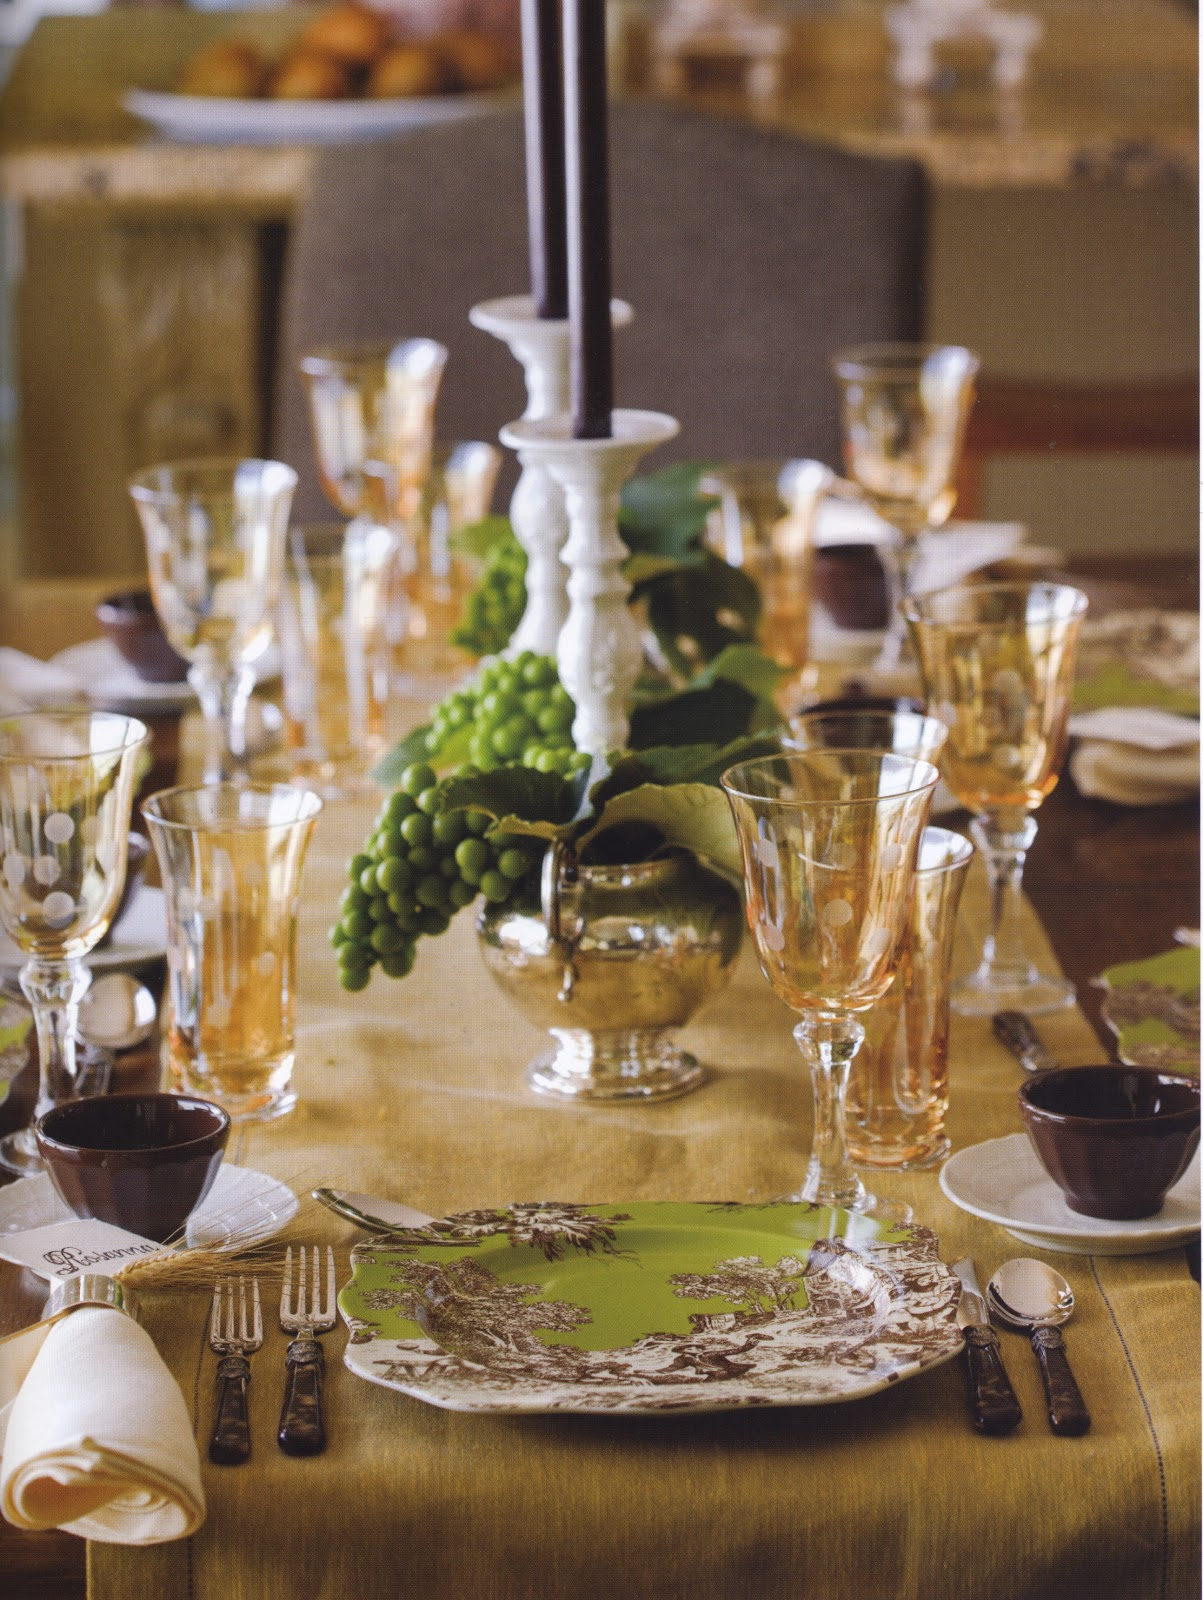 Rosanna 39 s table talk set a delightful thanksgiving table for Elegant table setting for thanksgiving